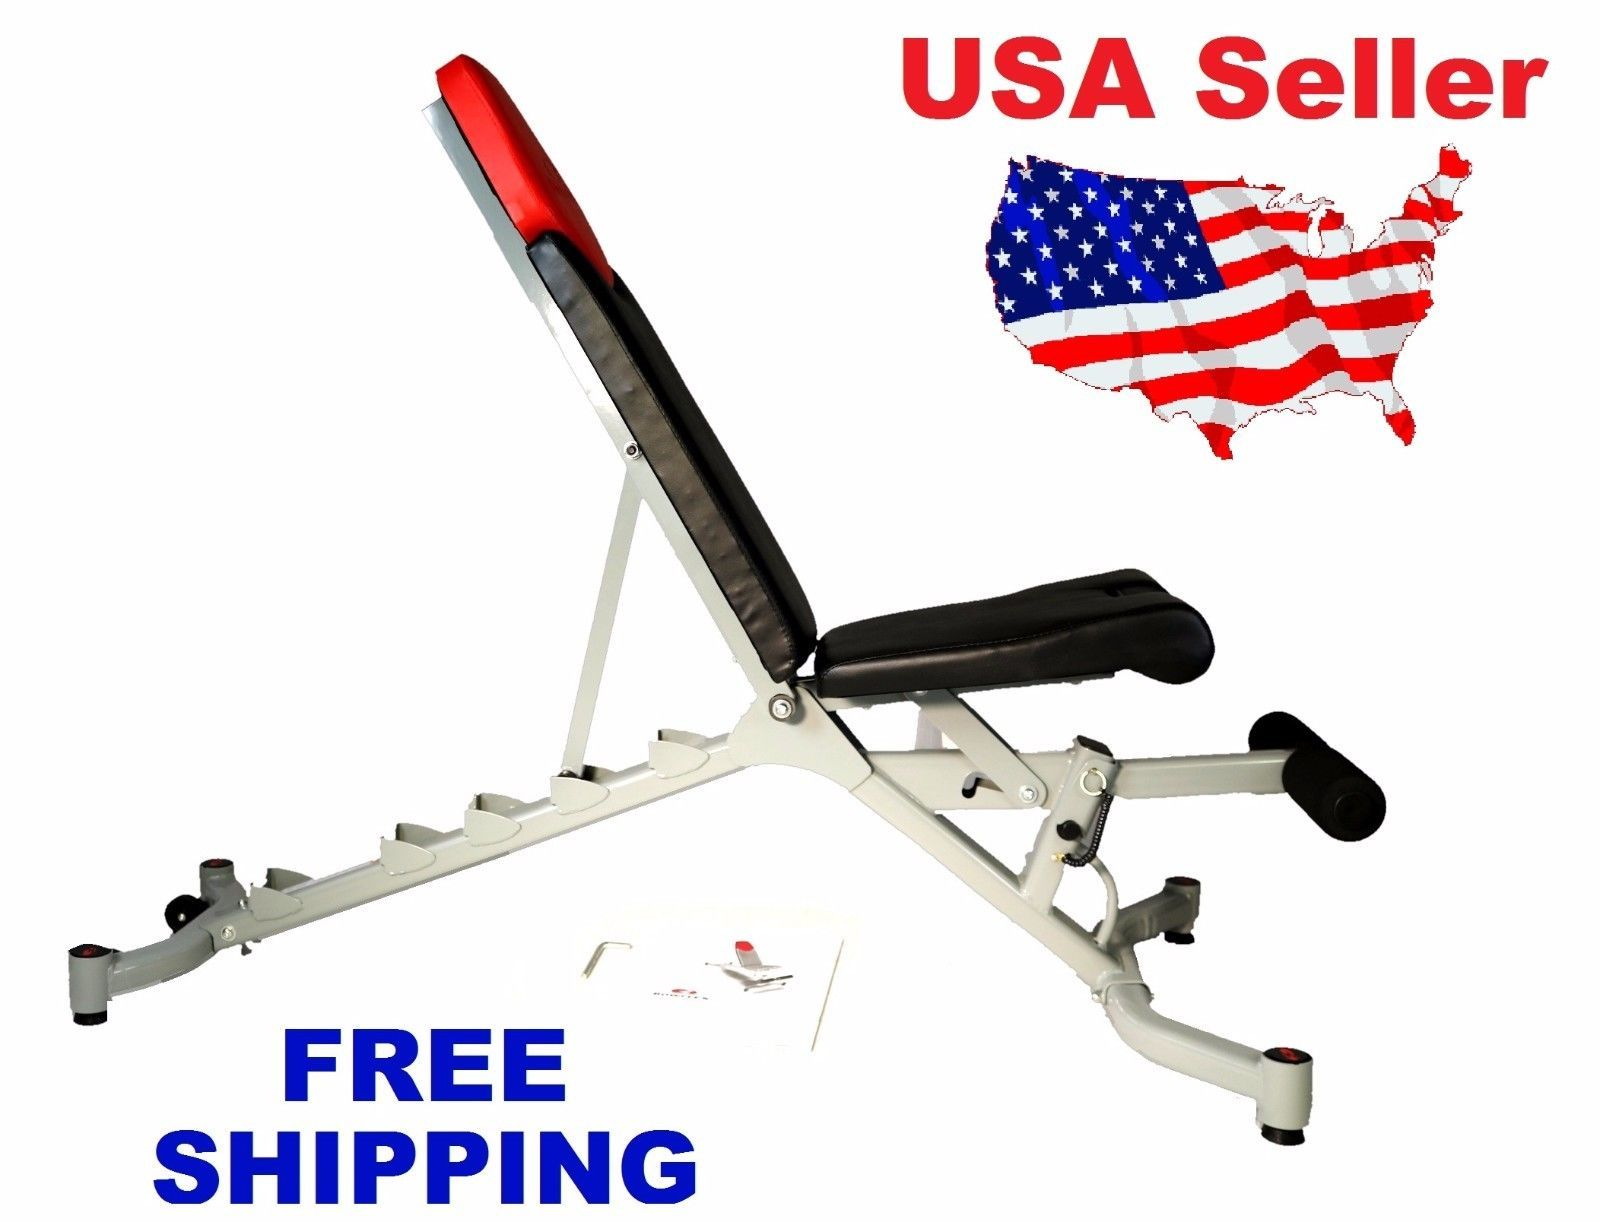 Bowflex Selecttech Adjustable Weight Bench 5 1 Incline New In Box Ebay Adjustable Weight Bench Bowflex Weight Benches